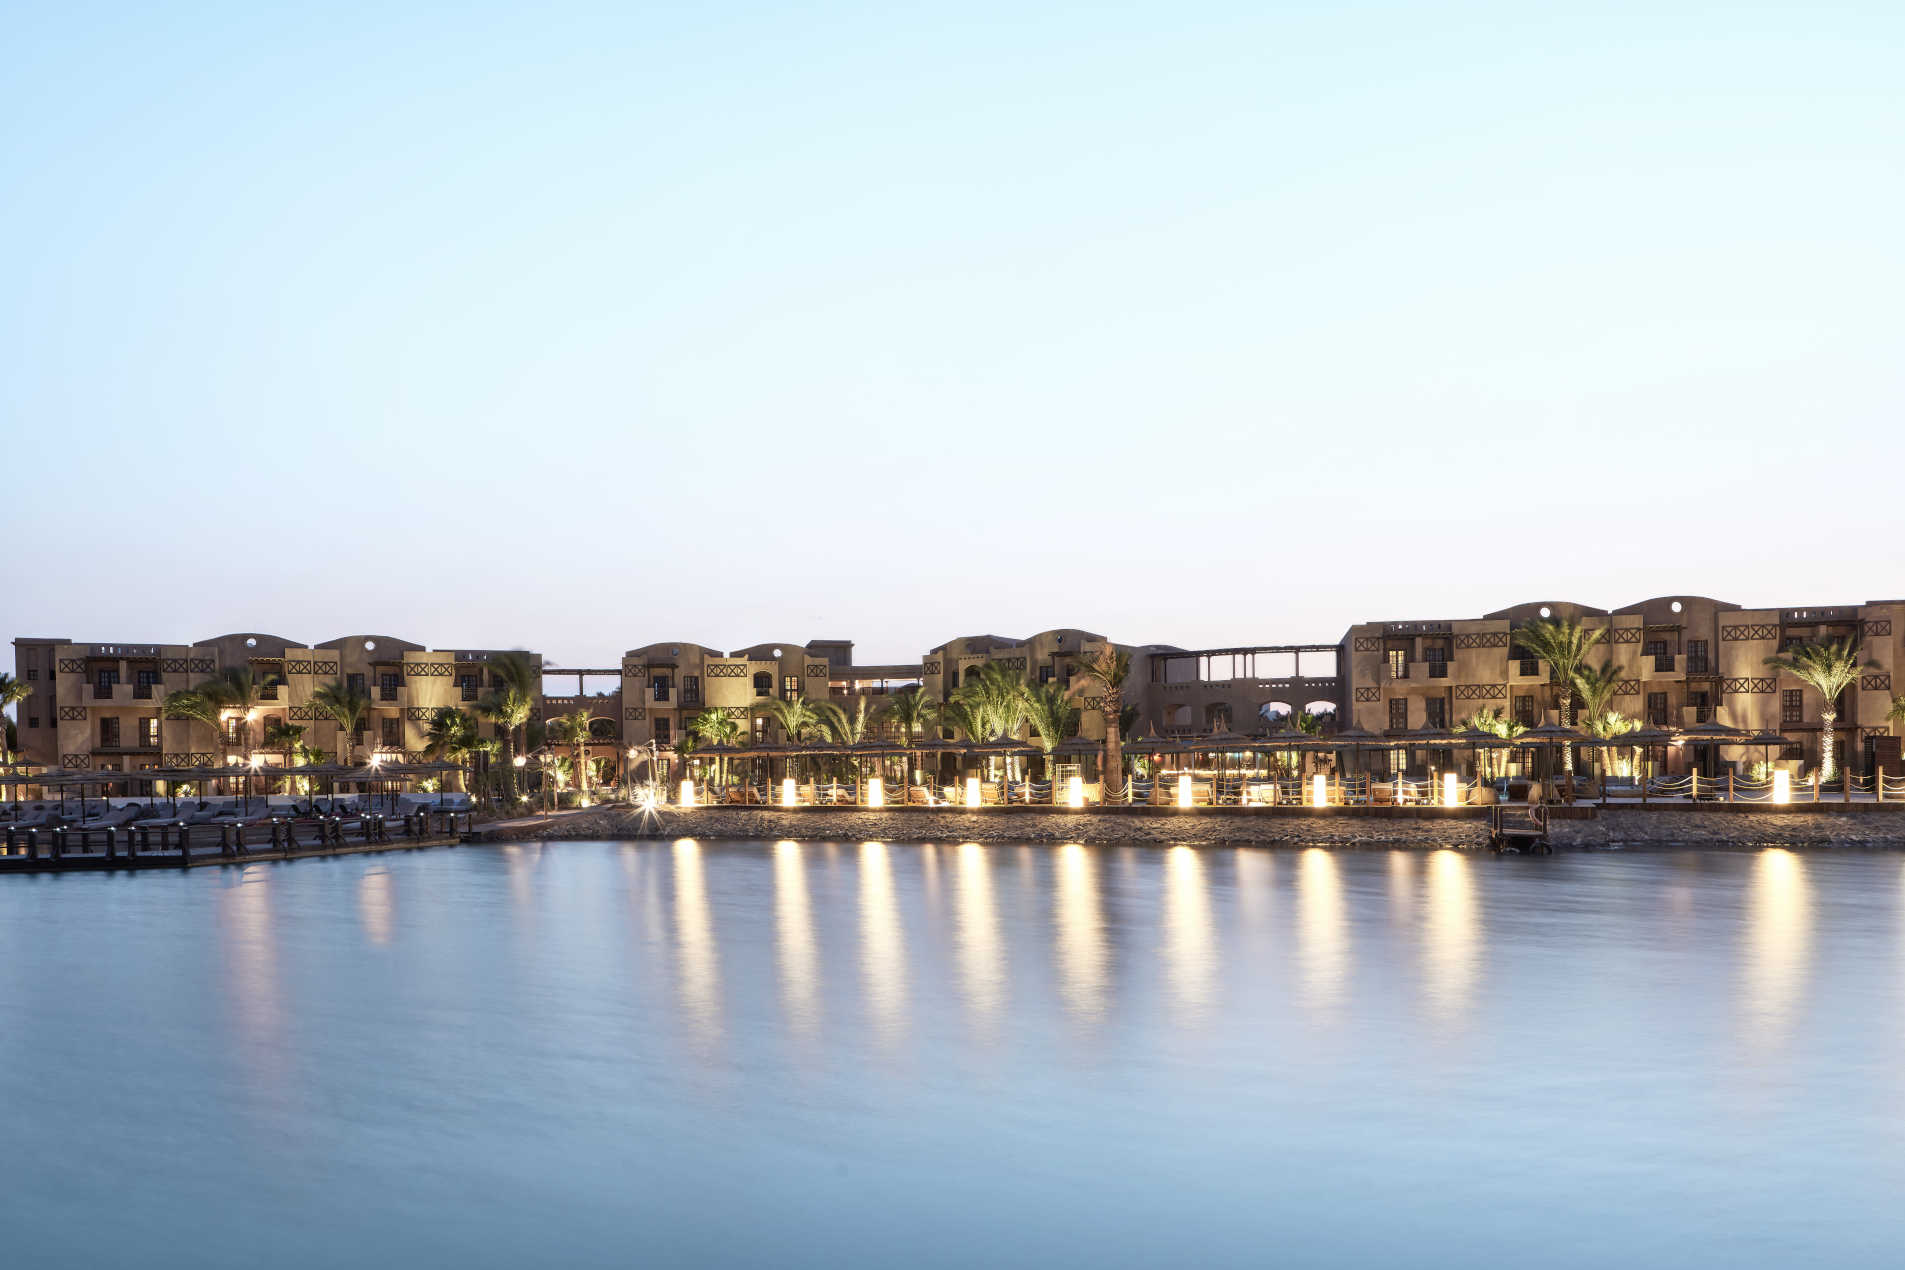 The overview of cooks club hotel in El Gouna Egypt during the sunset with a view to Red Sea lagoons and lights